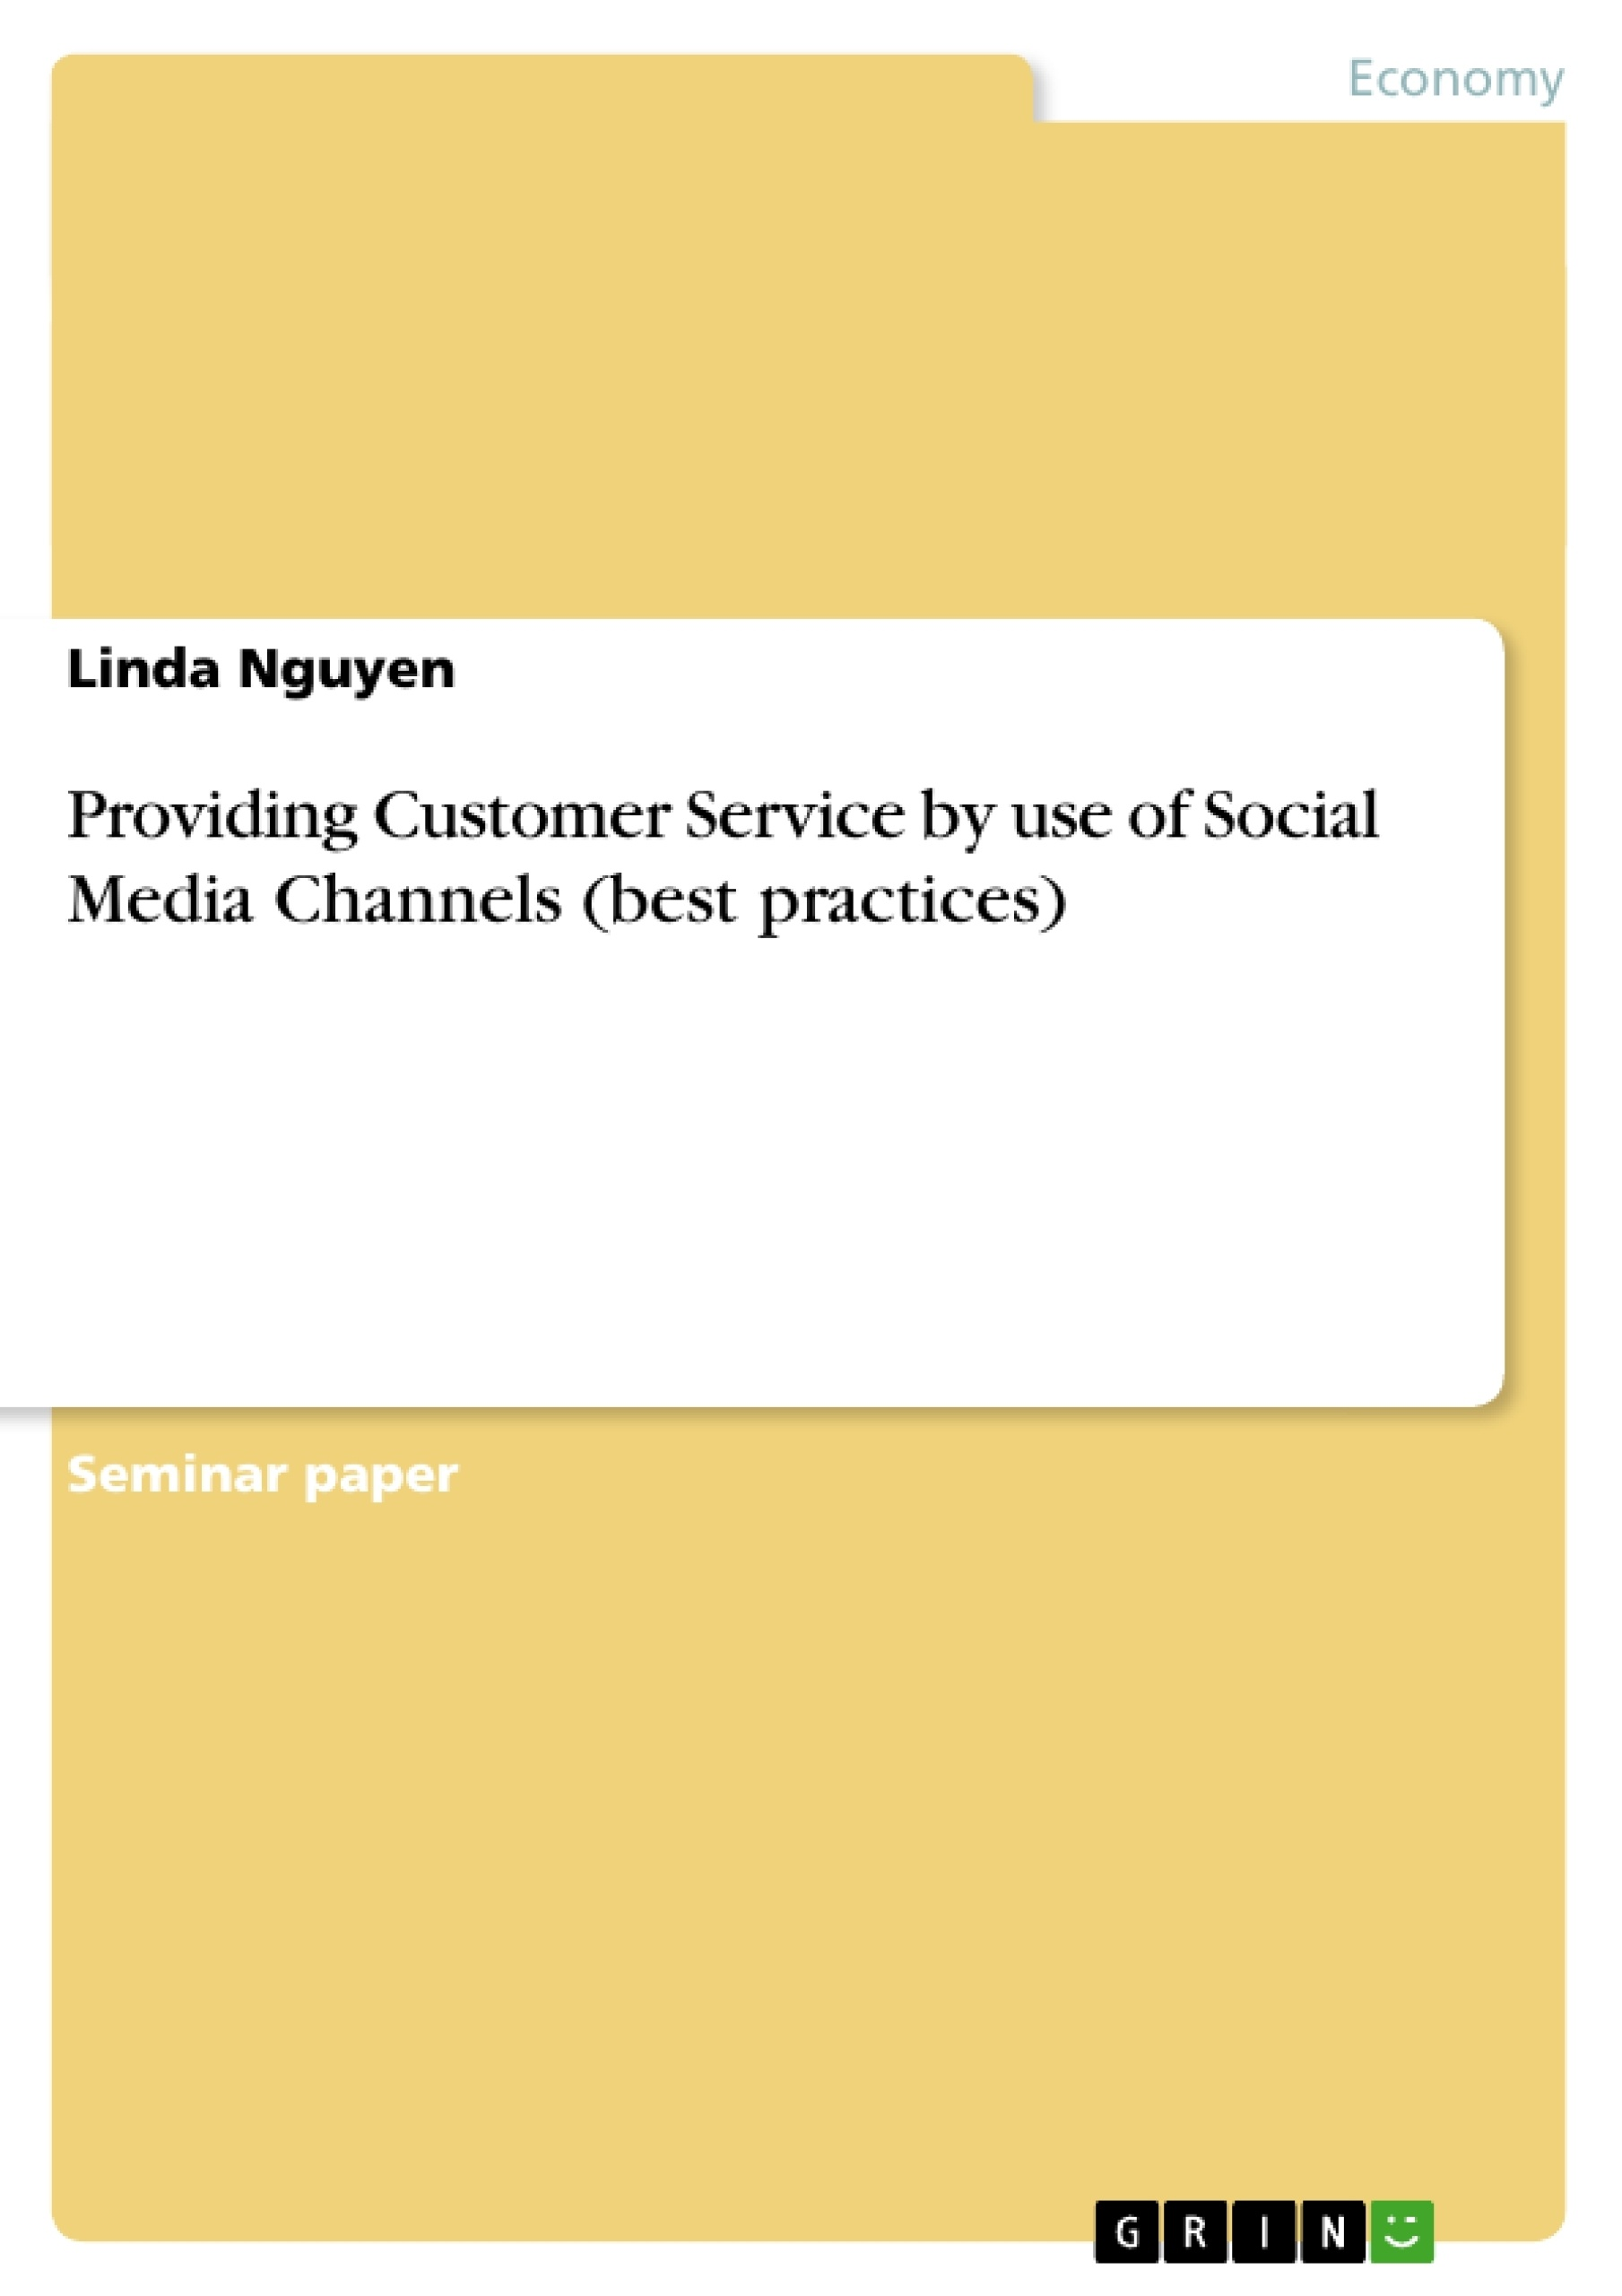 Title: Providing Customer Service by use of Social Media Channels (best practices)